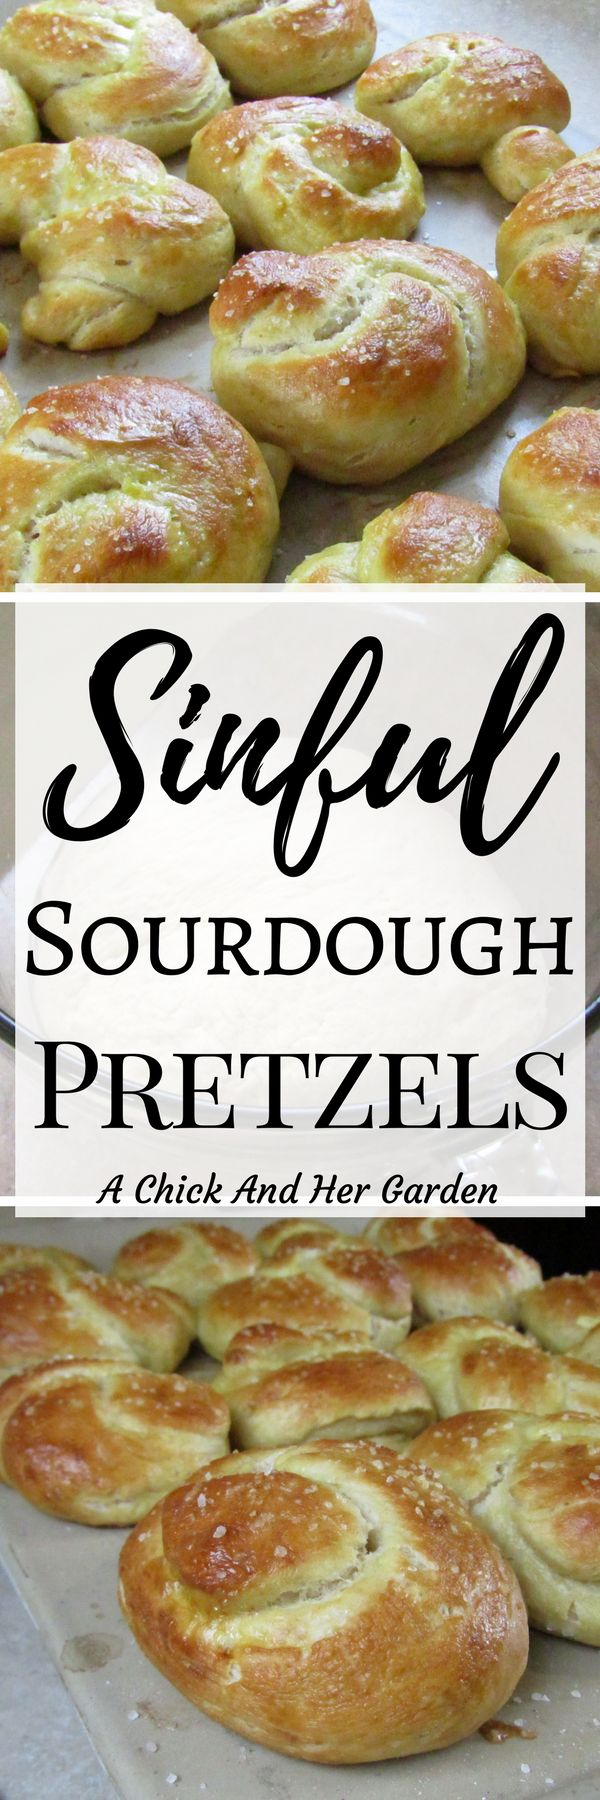 I love finding new ways to use my sourdough starter!  These sourdough pretzels were perfect and so much fun to make with the kids!  #sourdoughrecipes #sourdoughstarter #softpretzelrecipe #sourdoughpretzelrecipe #recipeswithkids